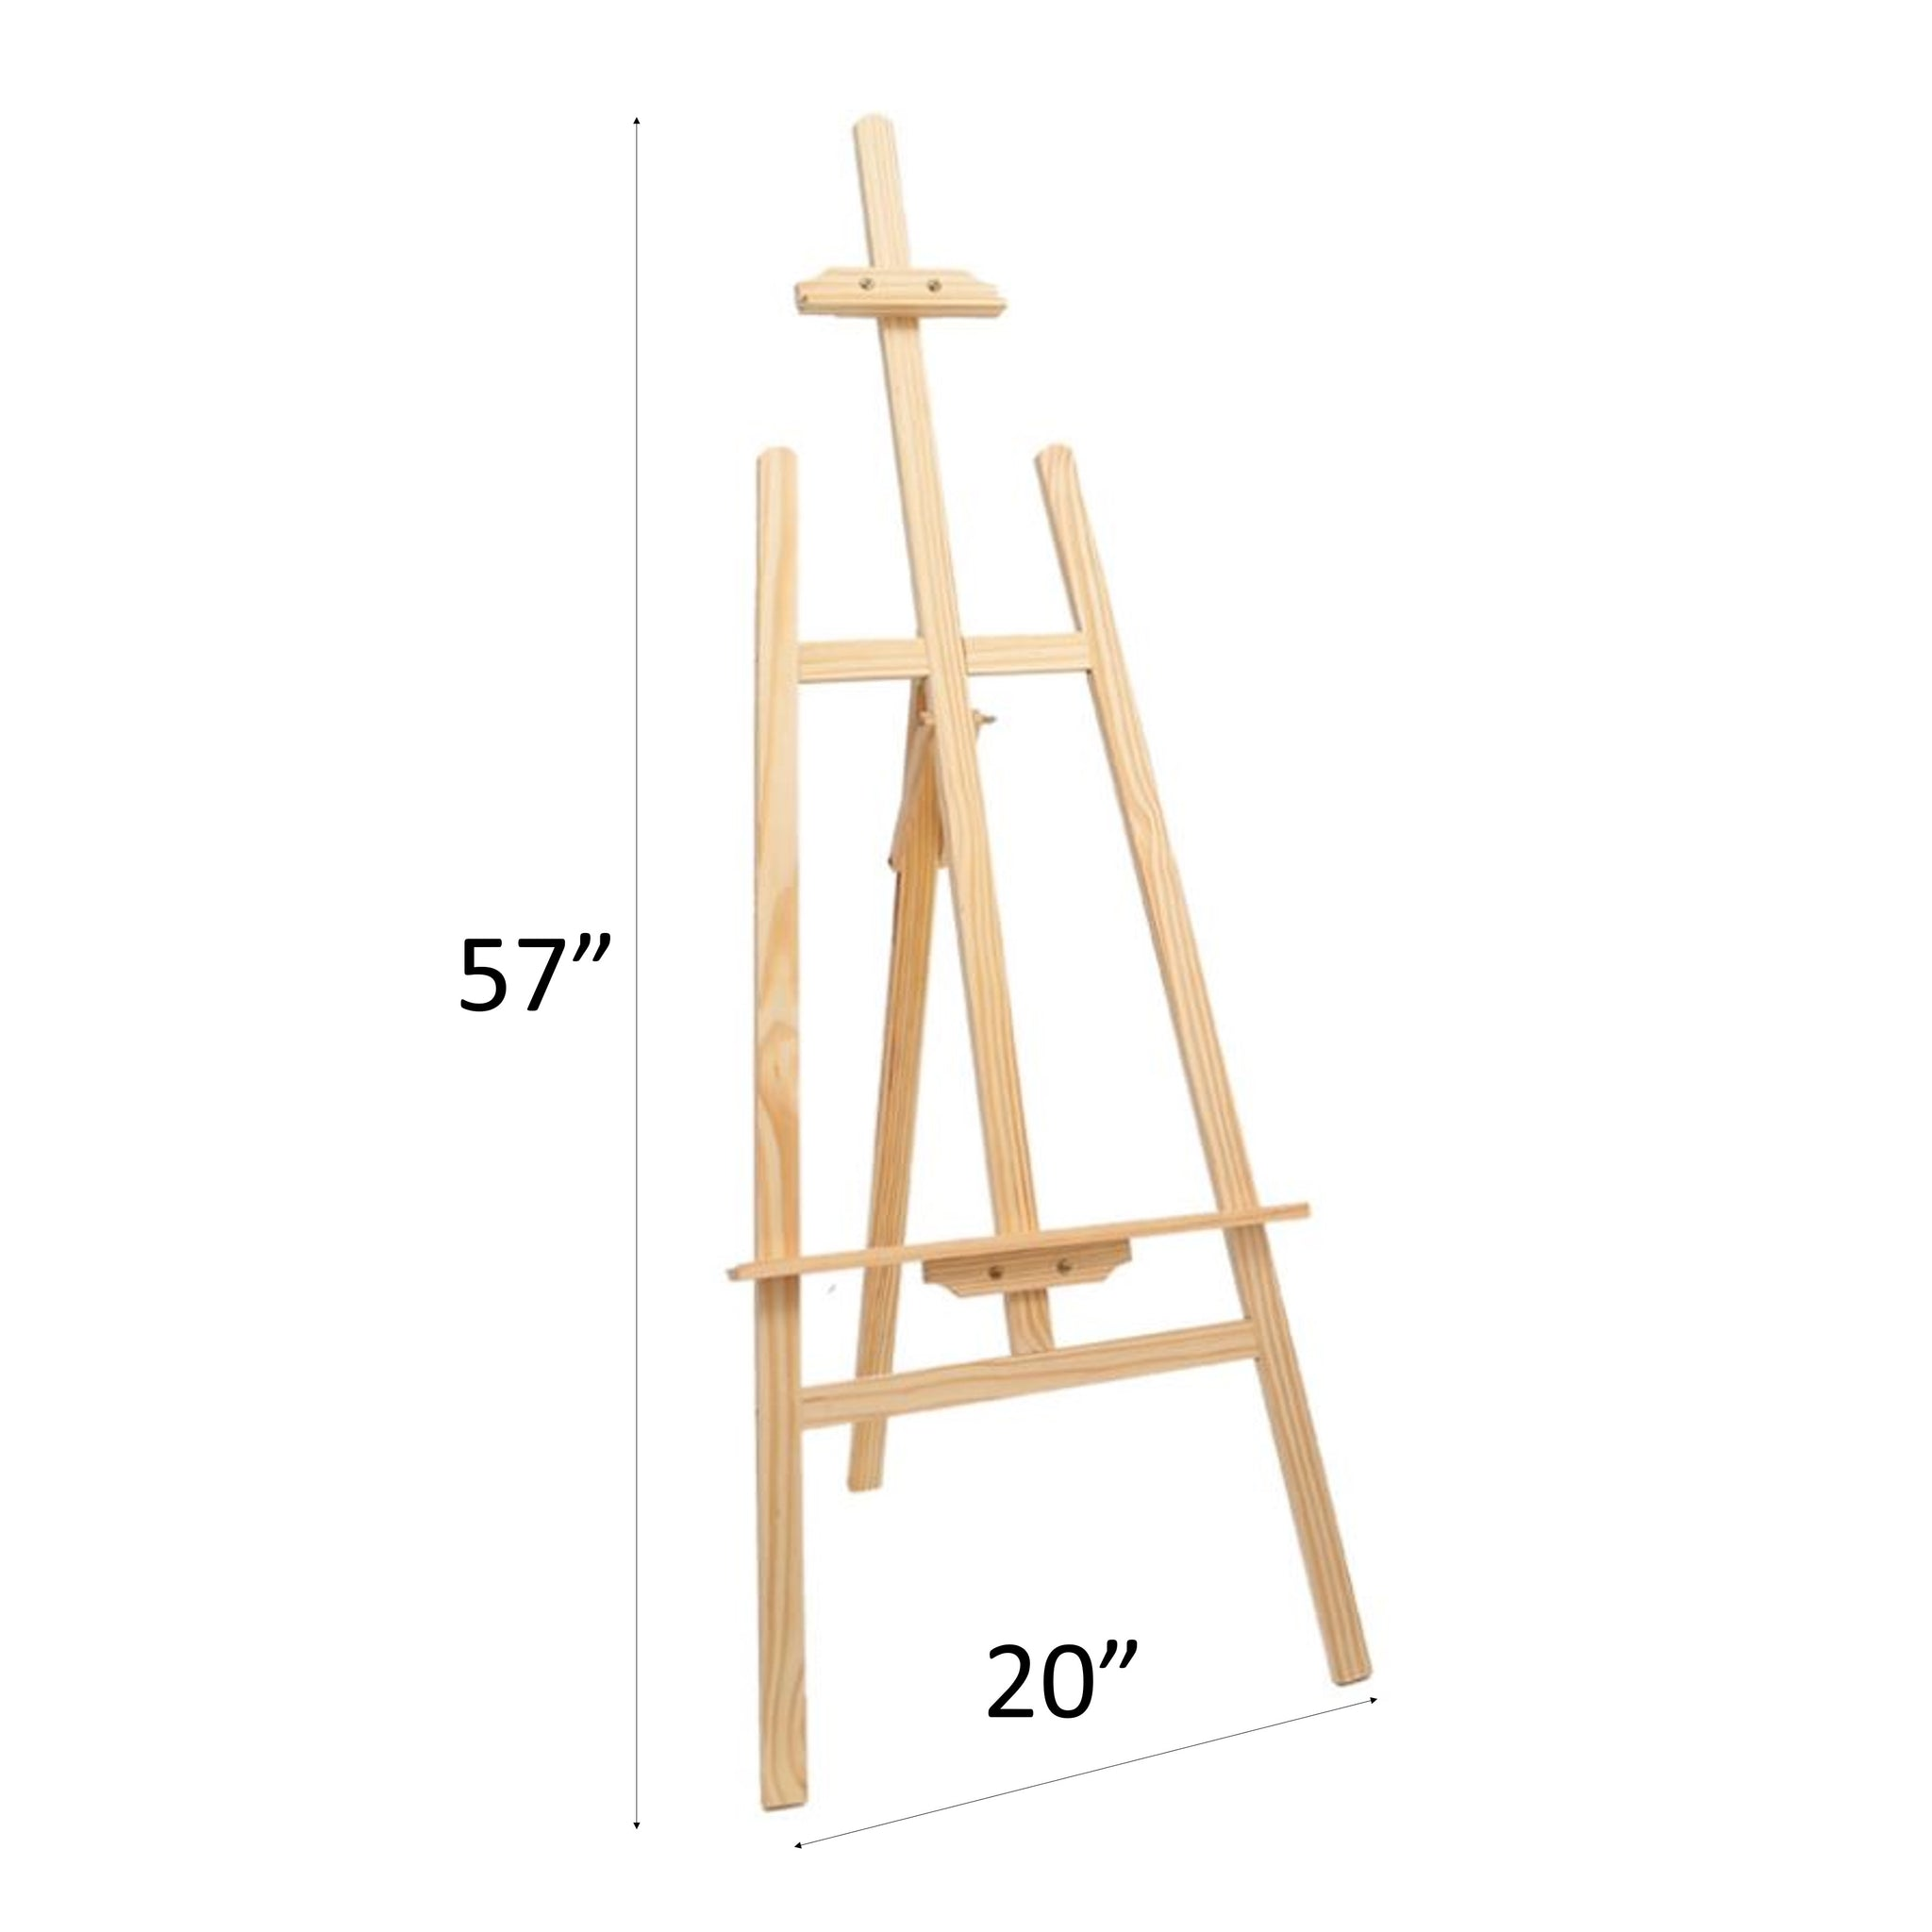 Full-size Wooden Easel Stand